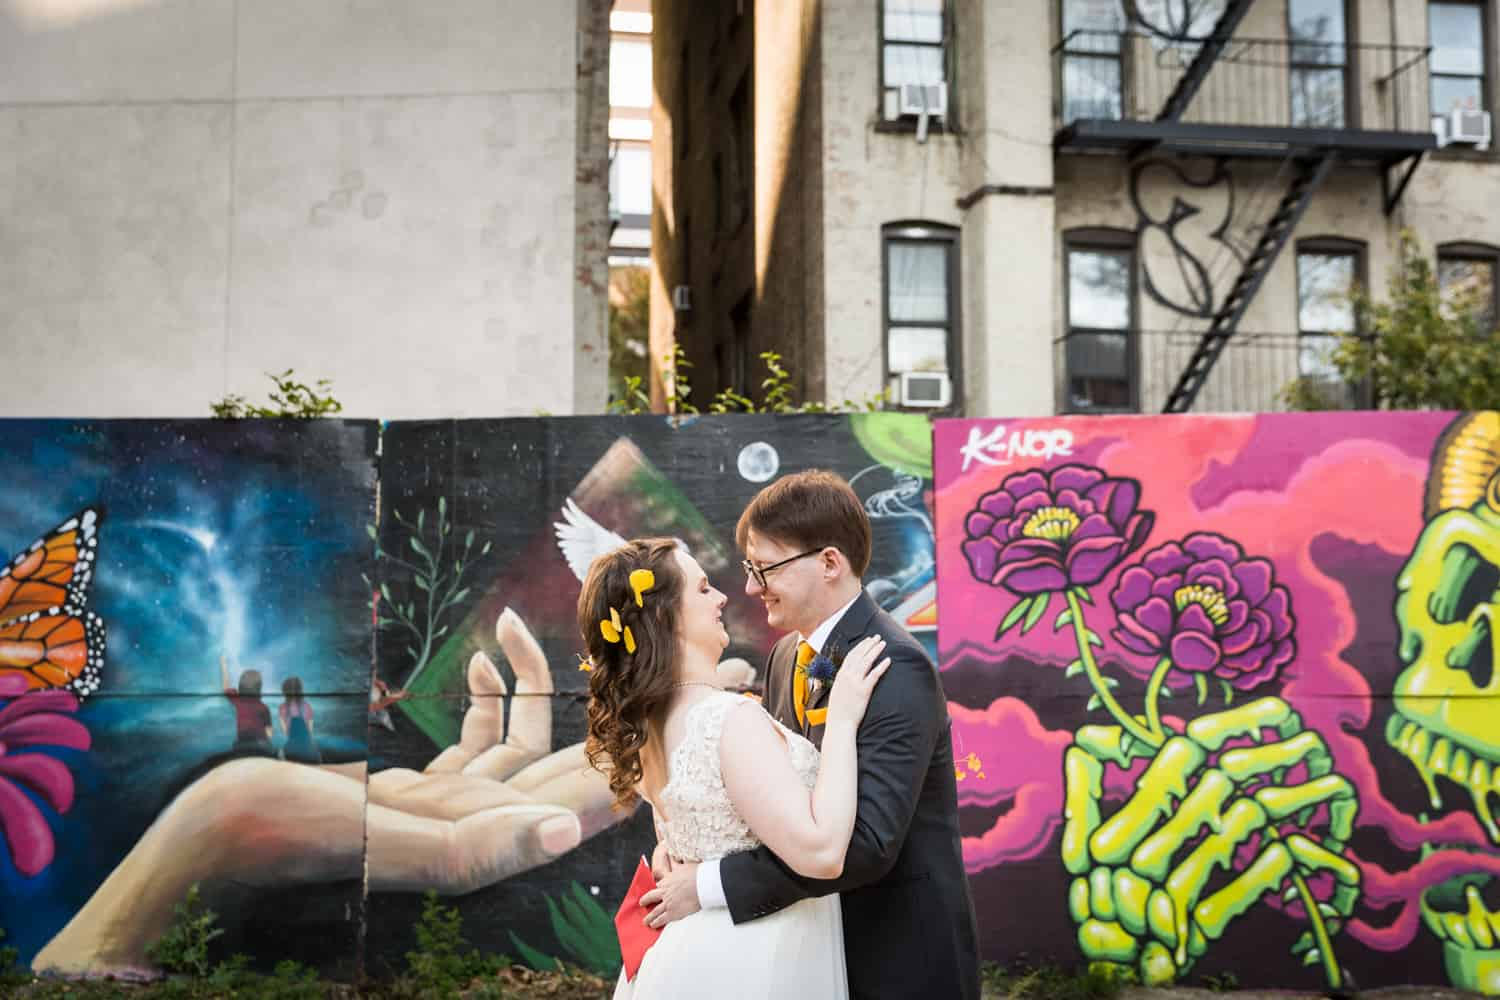 Bride and groom hugging in front of graffiti for an article on Covid-19 wedding planning